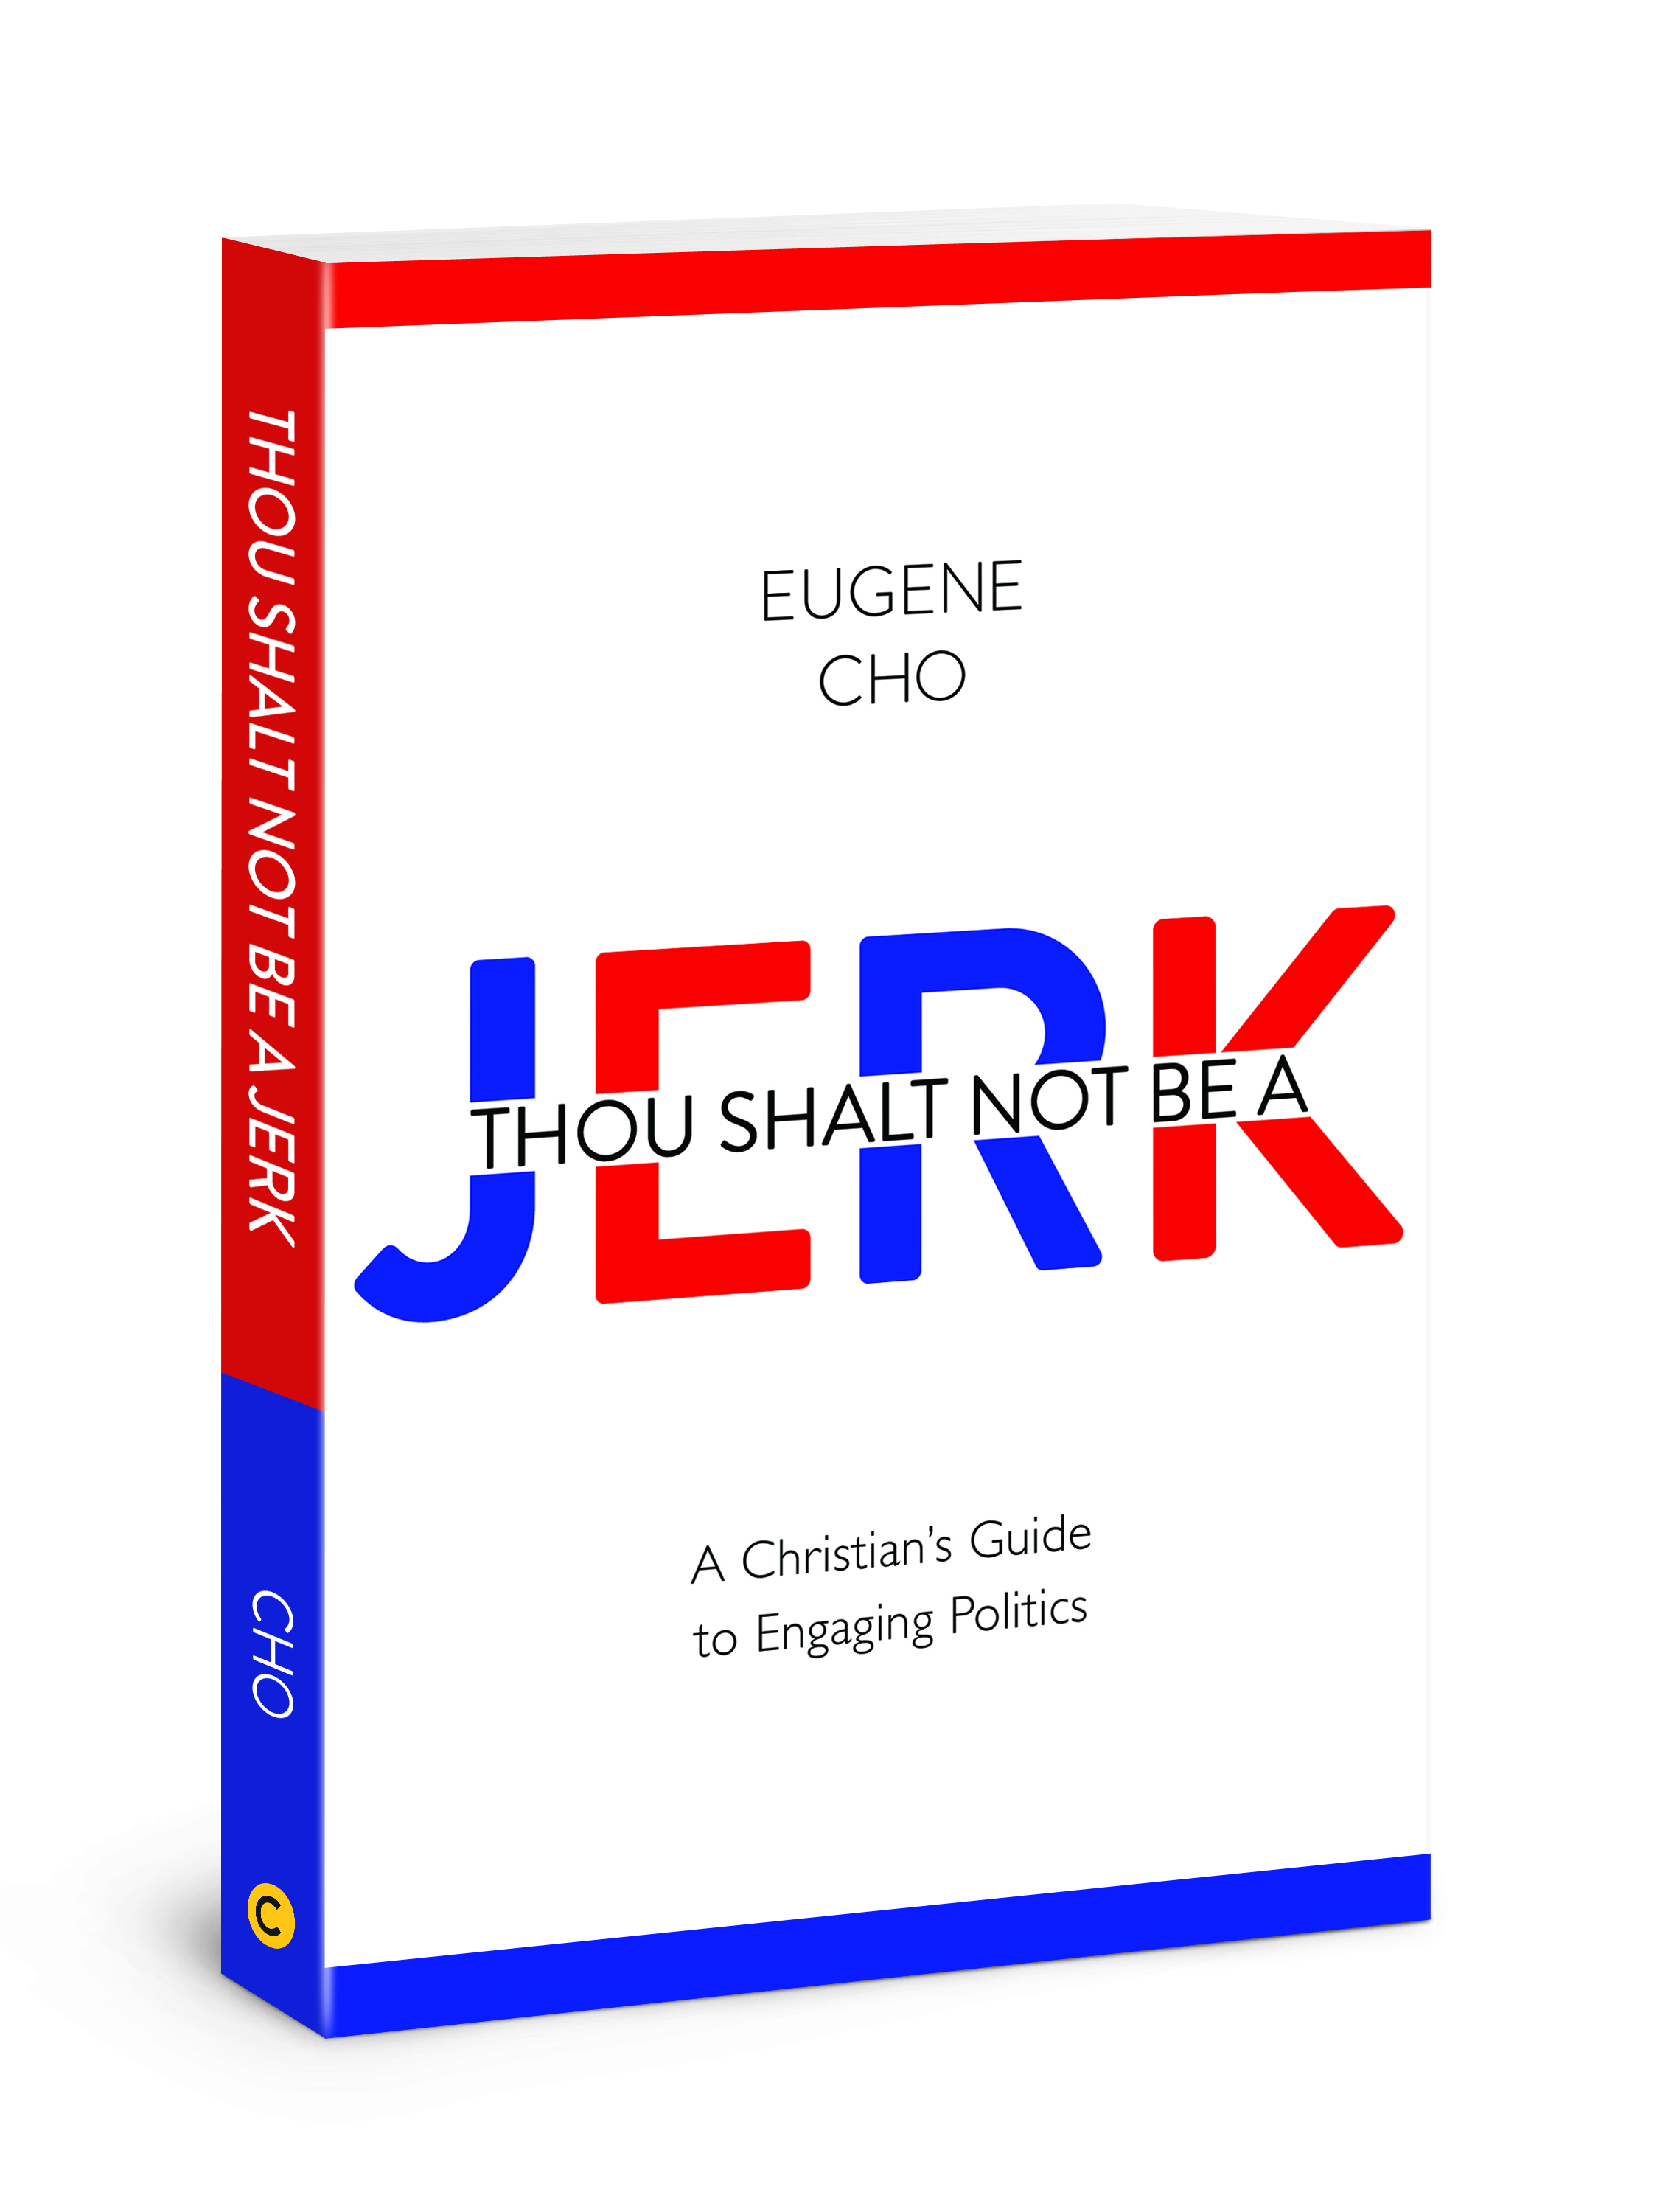 "Eugene Cho, Pastor and President of Bread for the World, Urges Christians to Stop Being Political Jerks in New Book ""Thou Shalt Not Be a Jerk"""